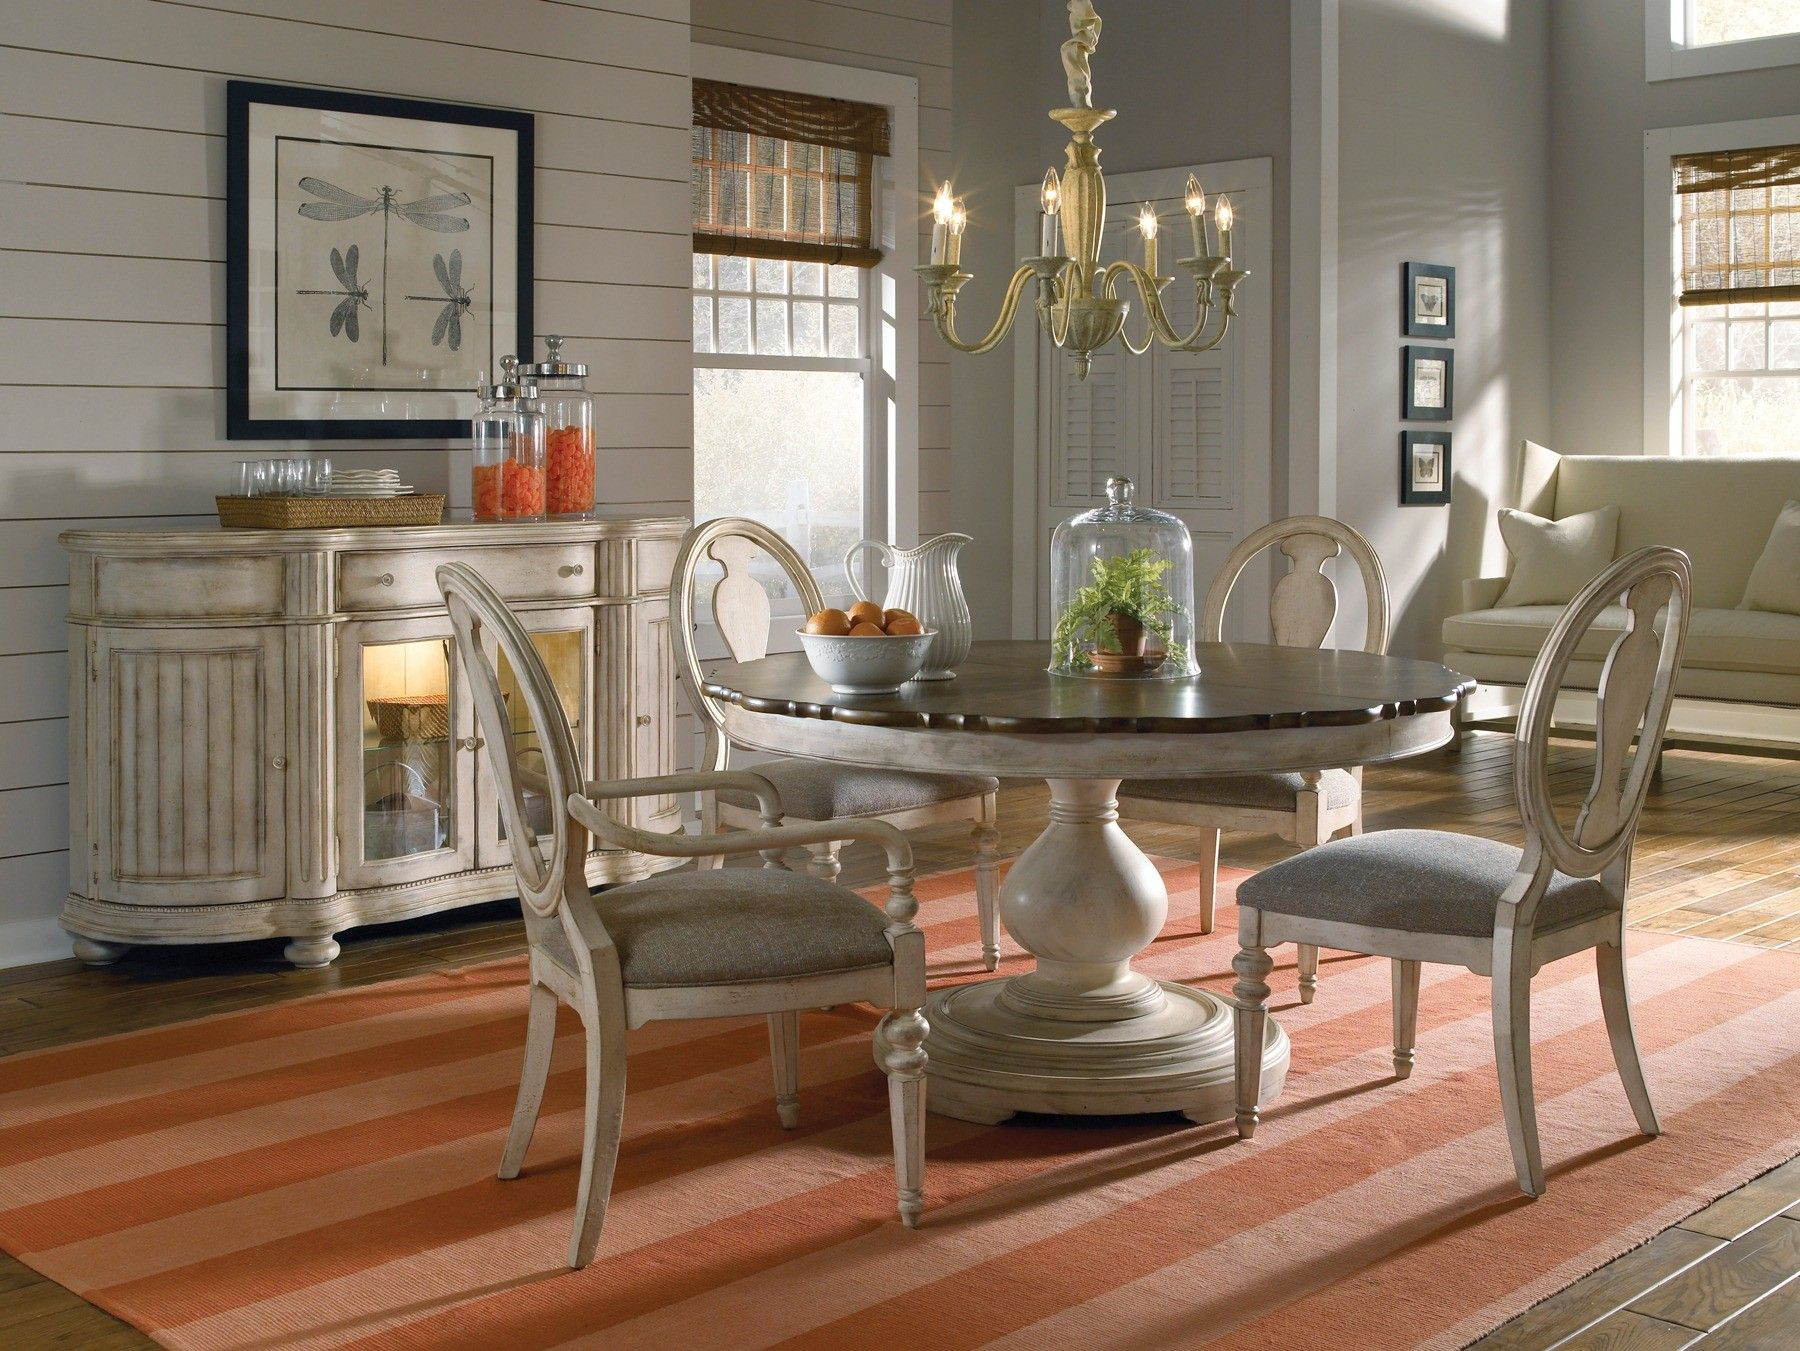 Round dining room tables and chairs heimilið pinterest round